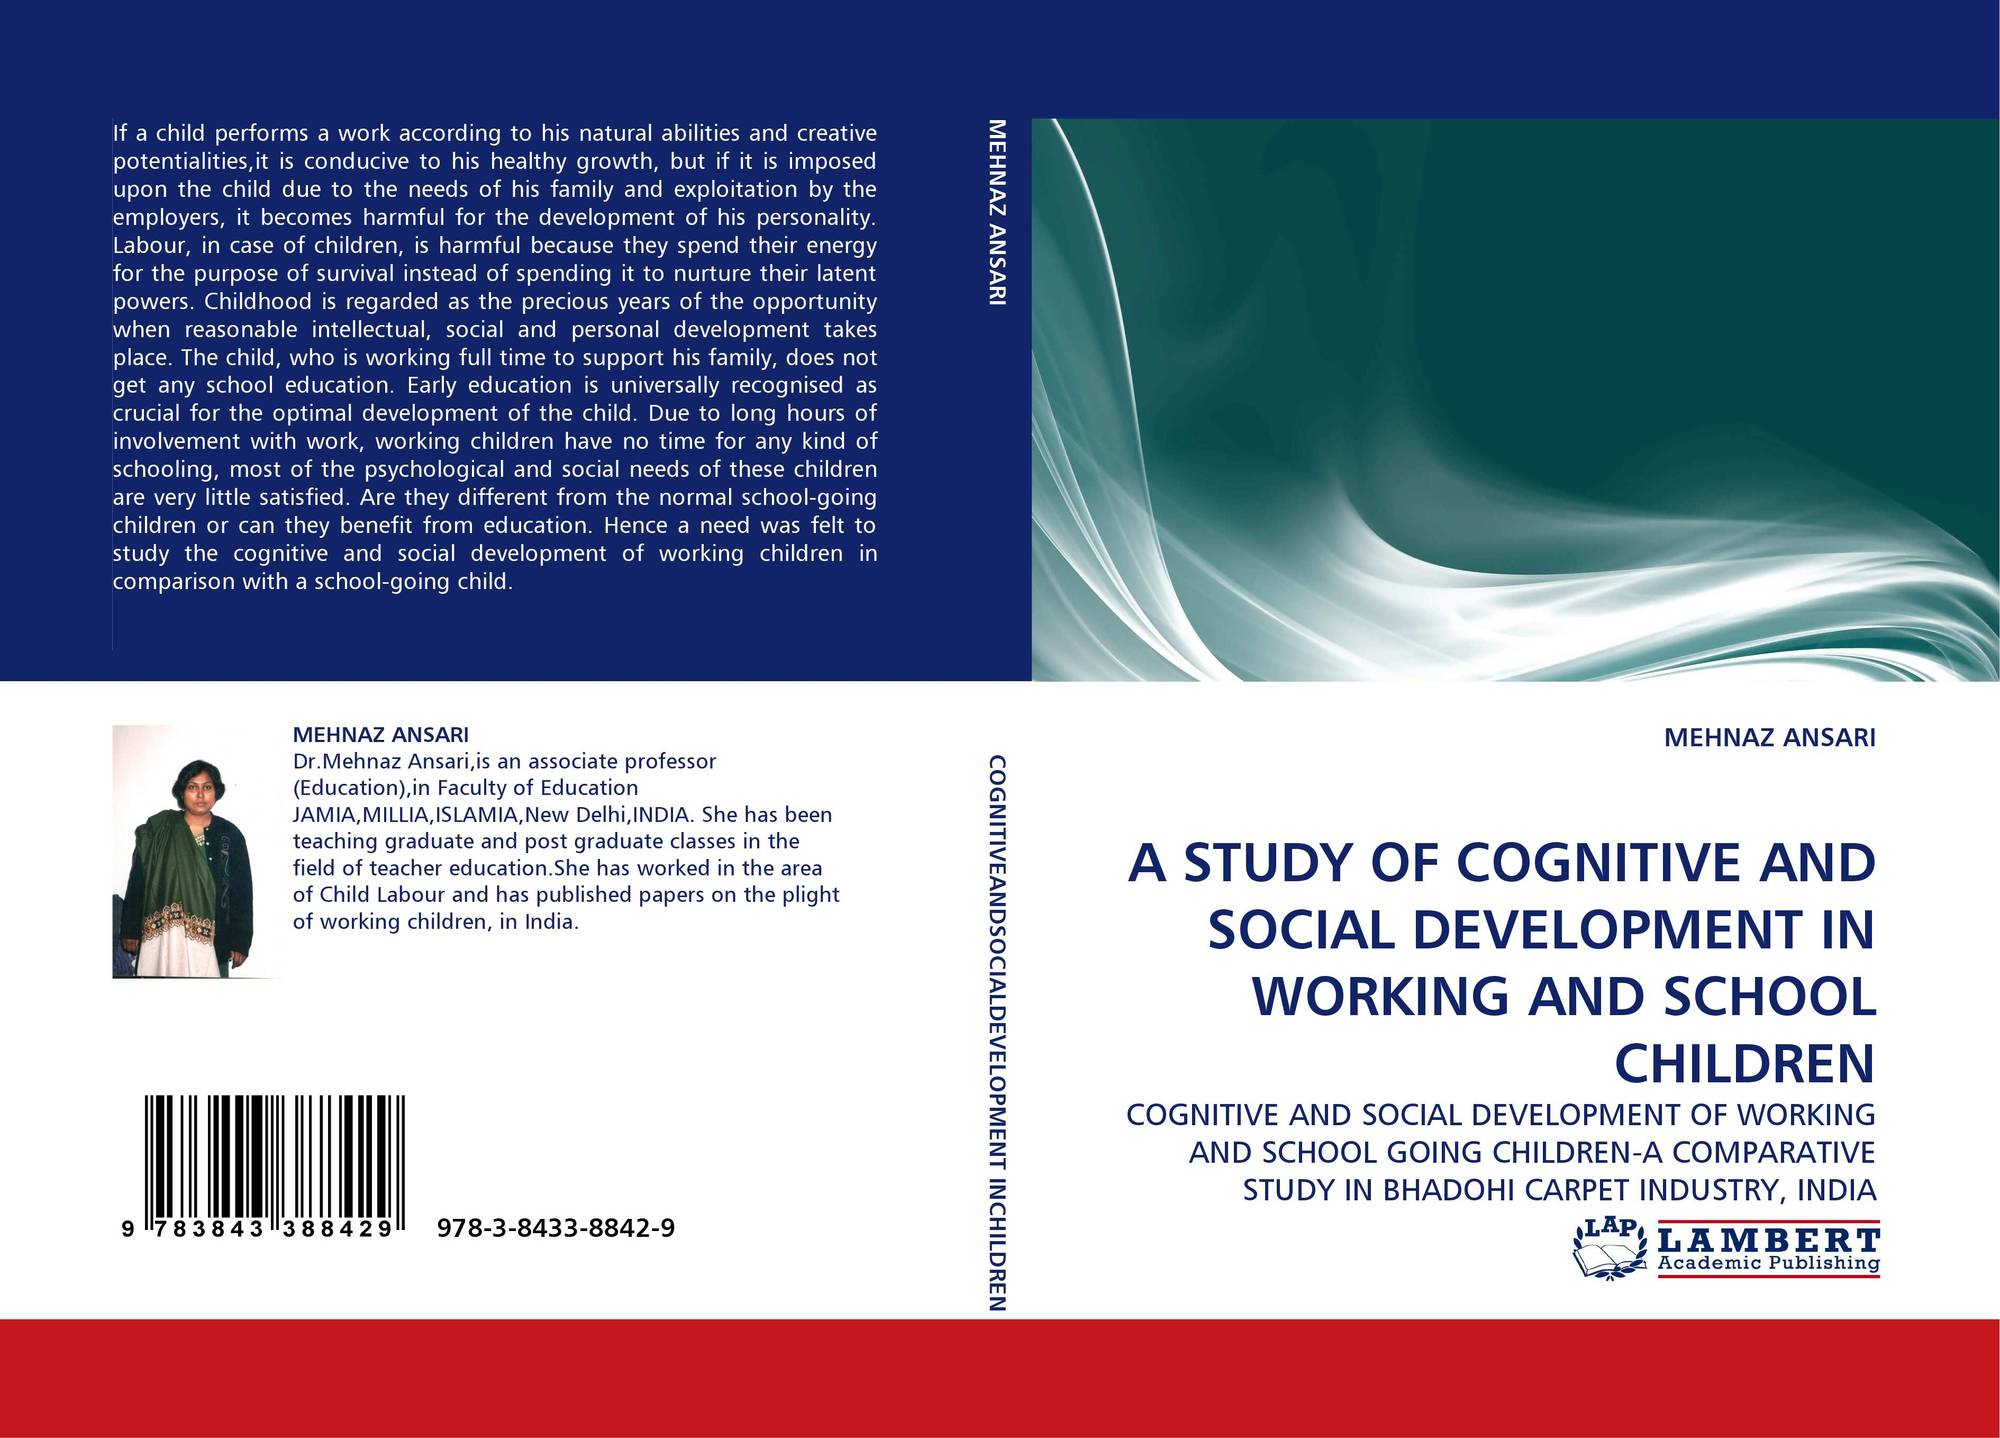 a study of the impact of rispedirone on the cognitive performance of children Physical abuse and punishment impact children's academic performance in this study, over 650 children and their promote children's cognitive performance.